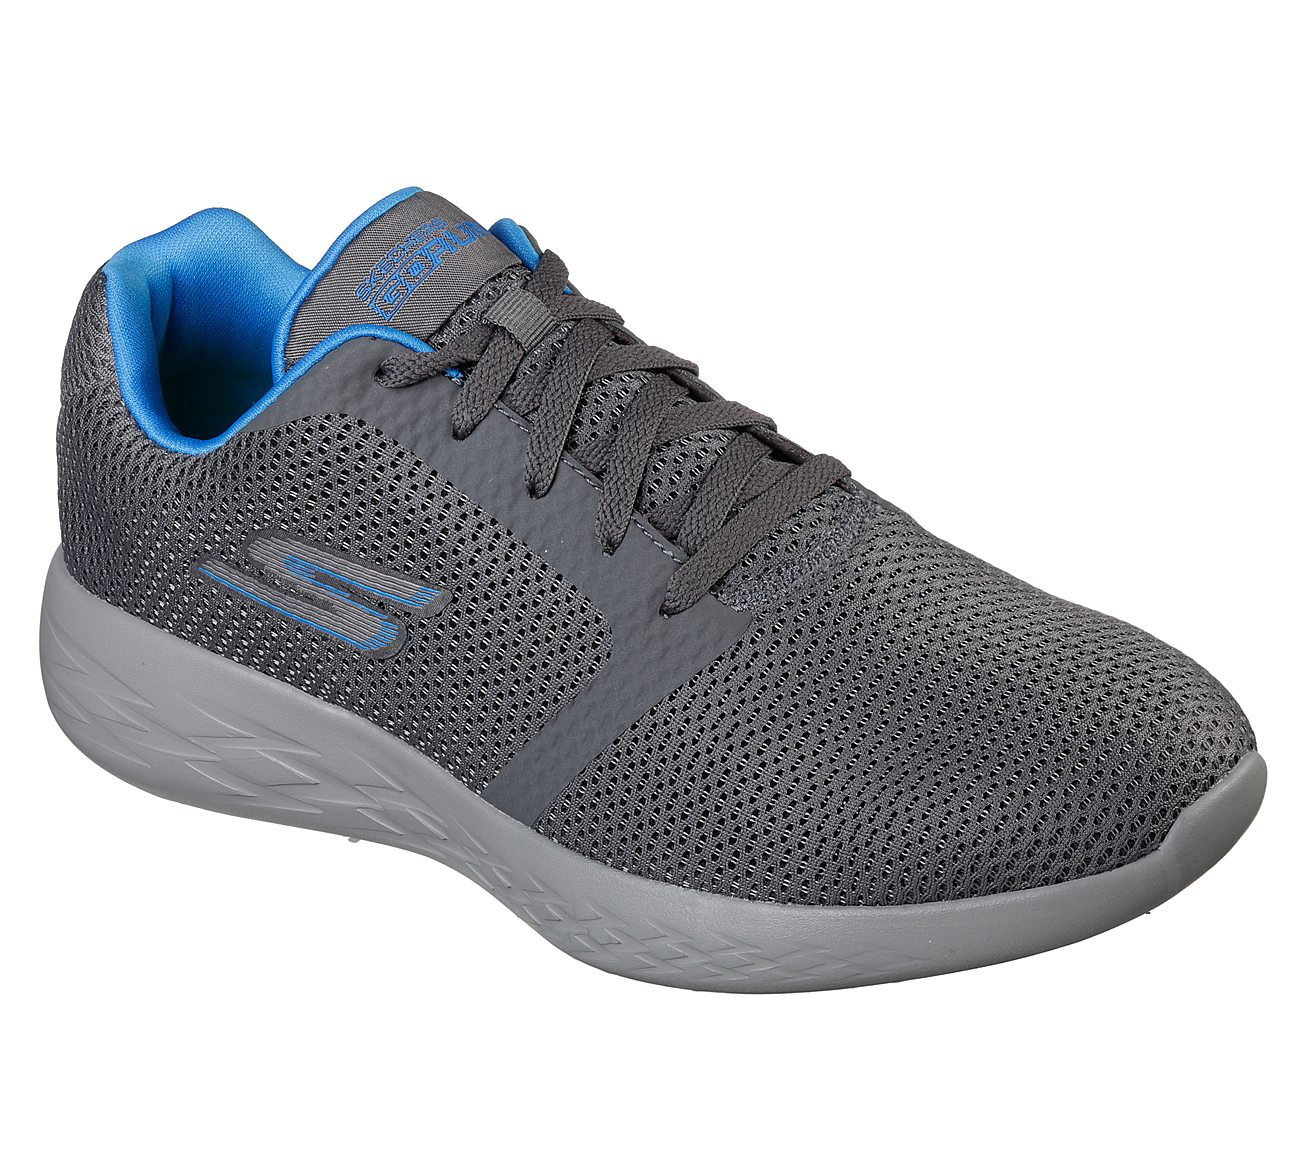 Skechers GOrun 600 - Refine